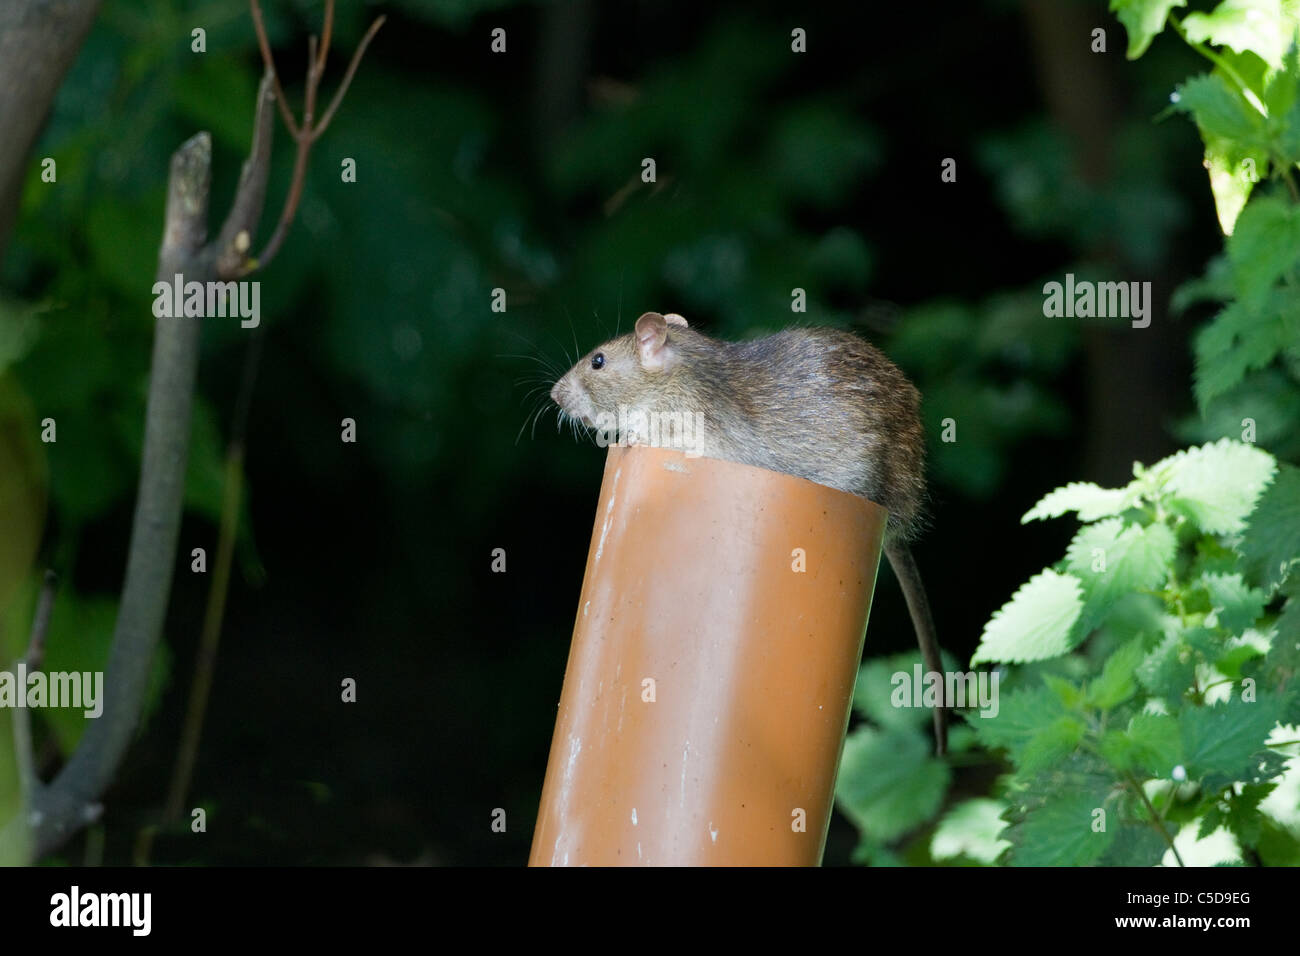 Brown Rat Rattus norvegicus emerging from the top of a drainpipe - Stock Image